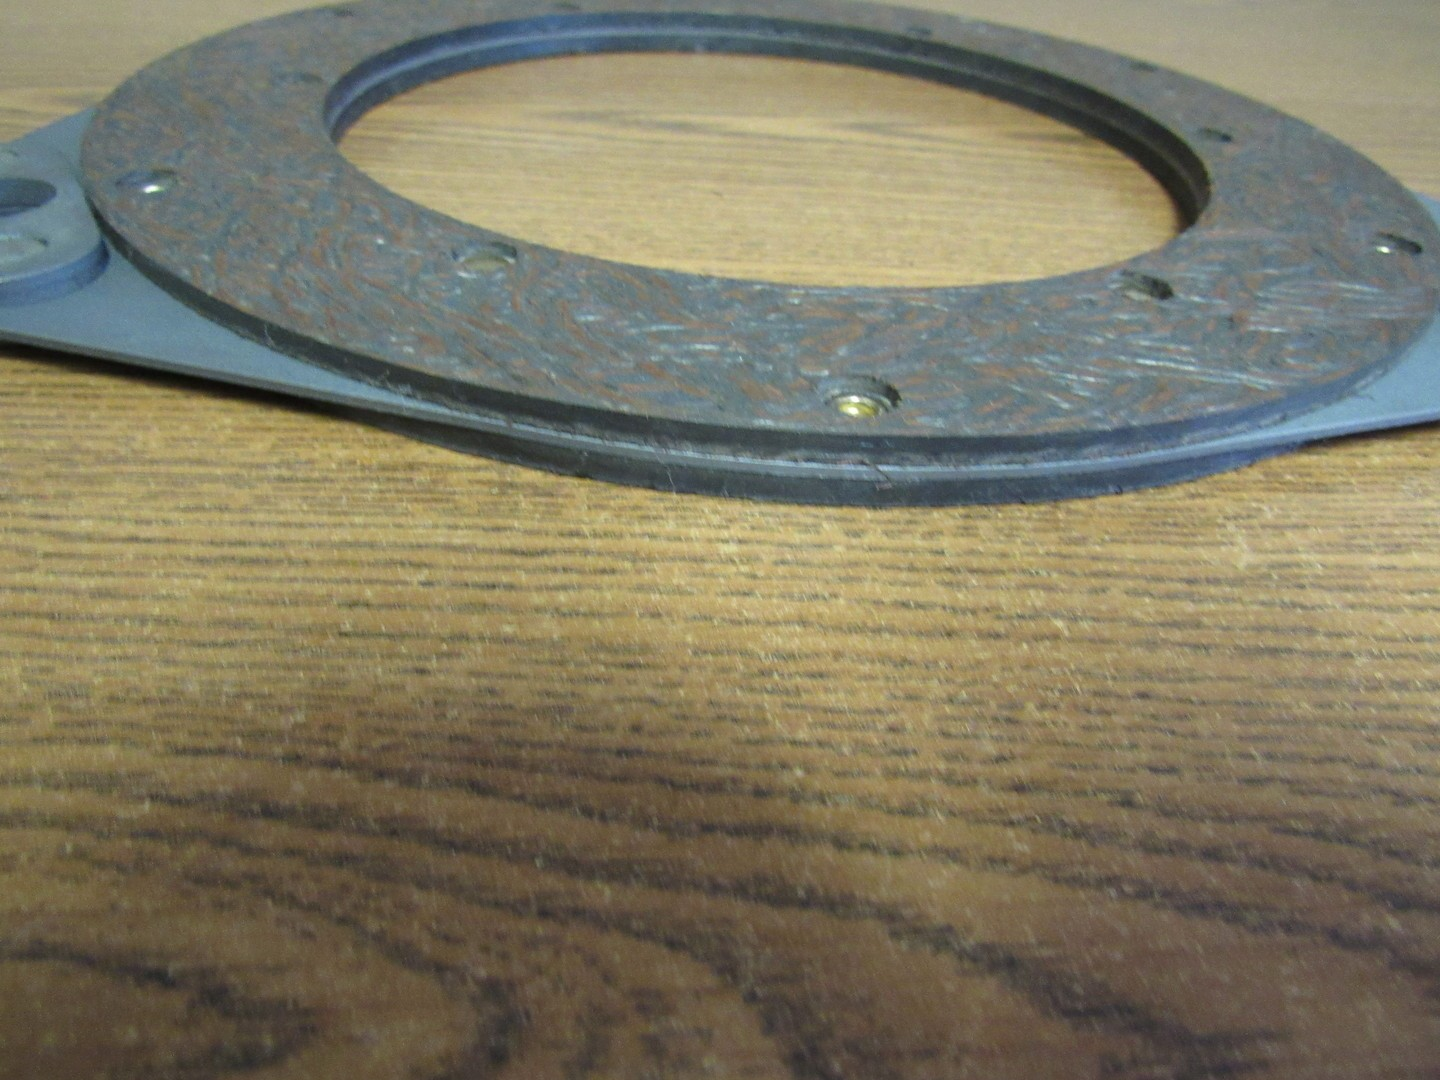 JD A G 60 70 CLUTCH DISC W/ RIVETED LINING  9514